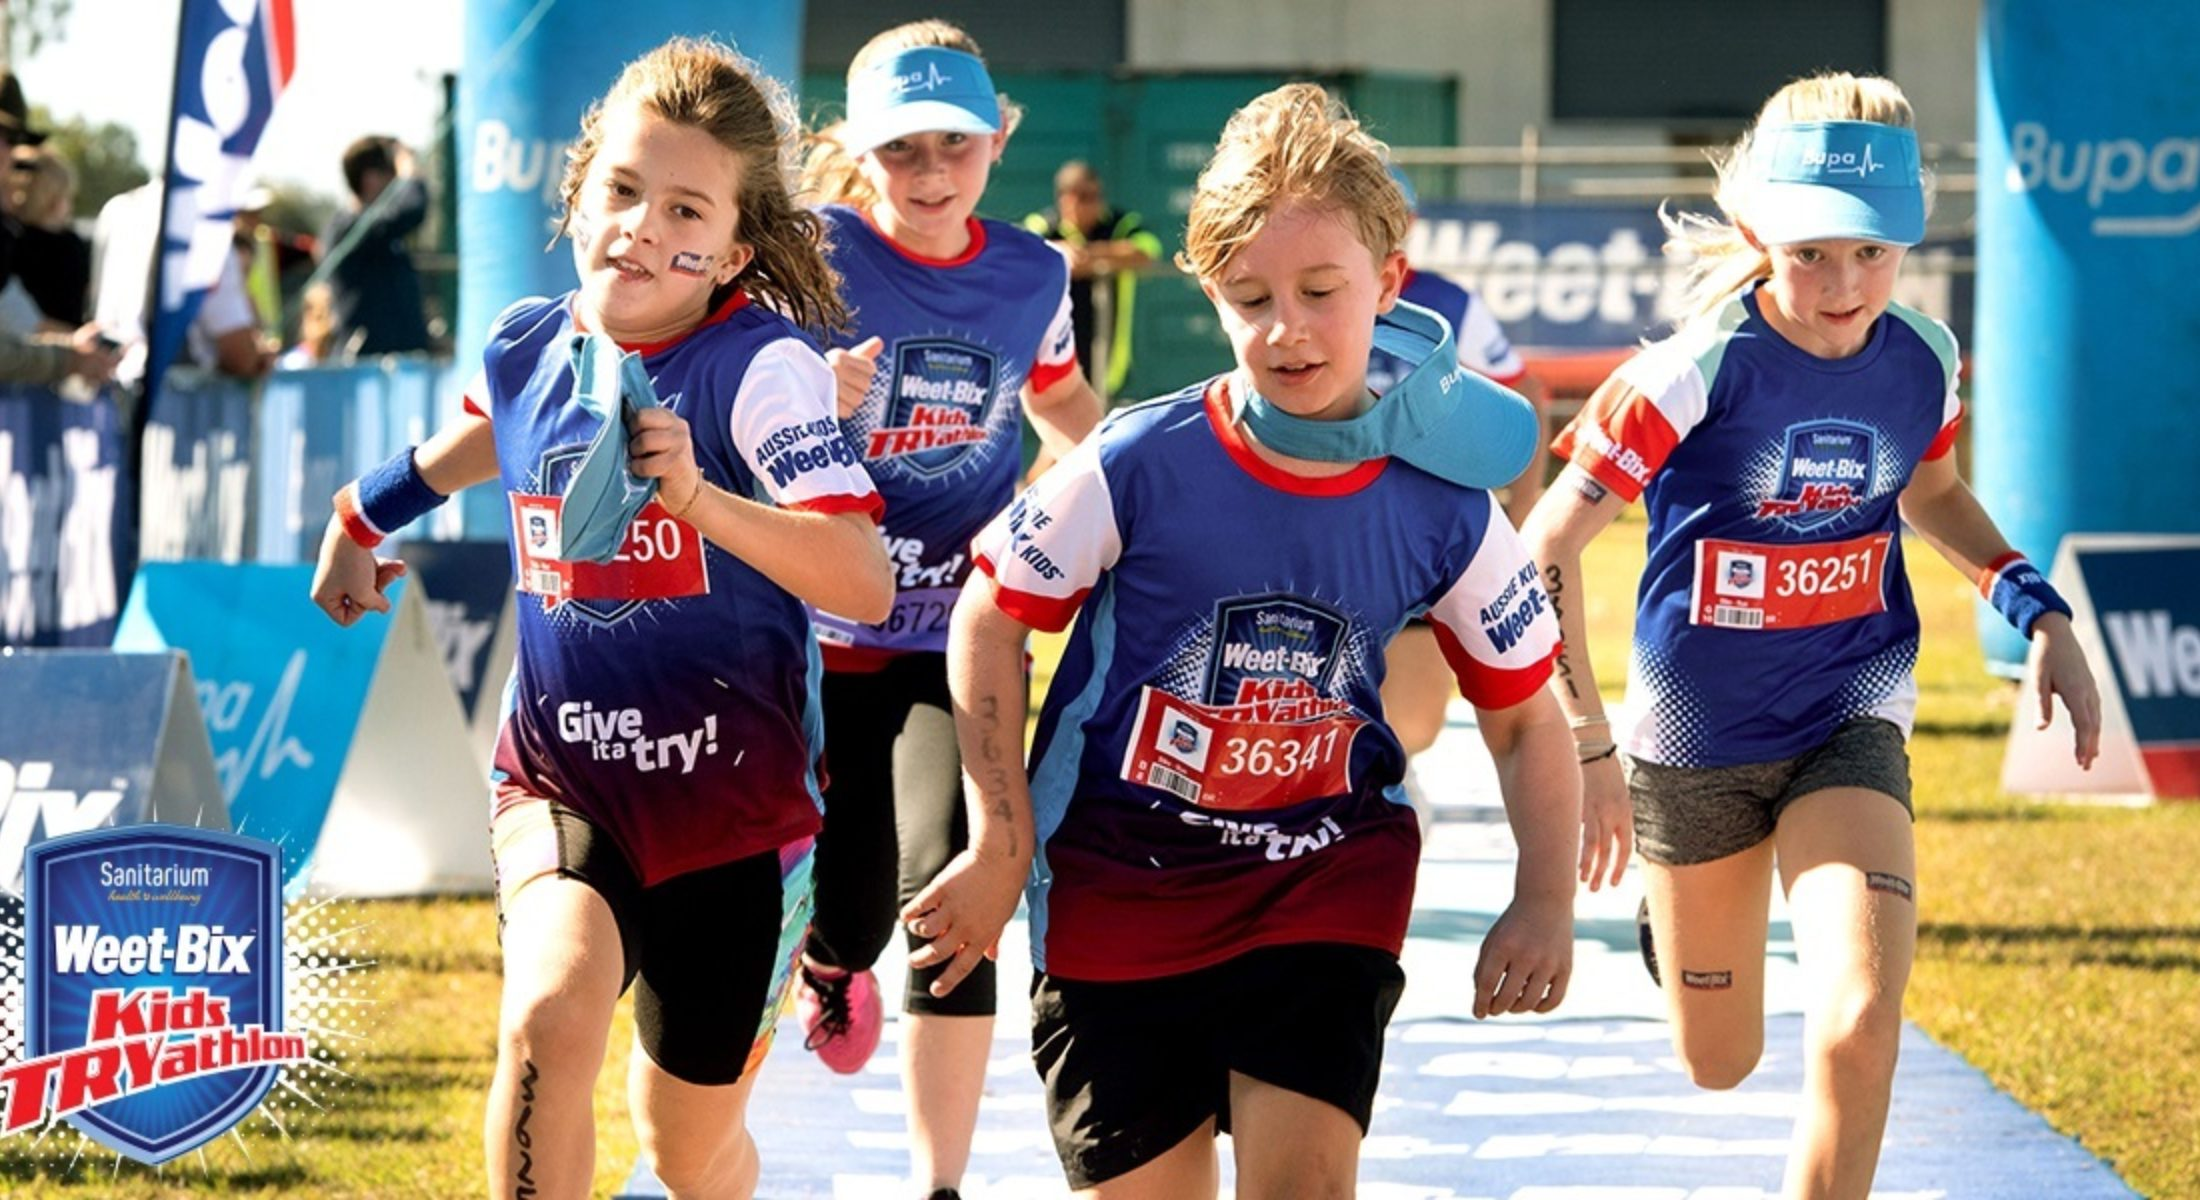 Weetbix Tryathlon Kids Sport Event Run Fitness Moreton Bay Region